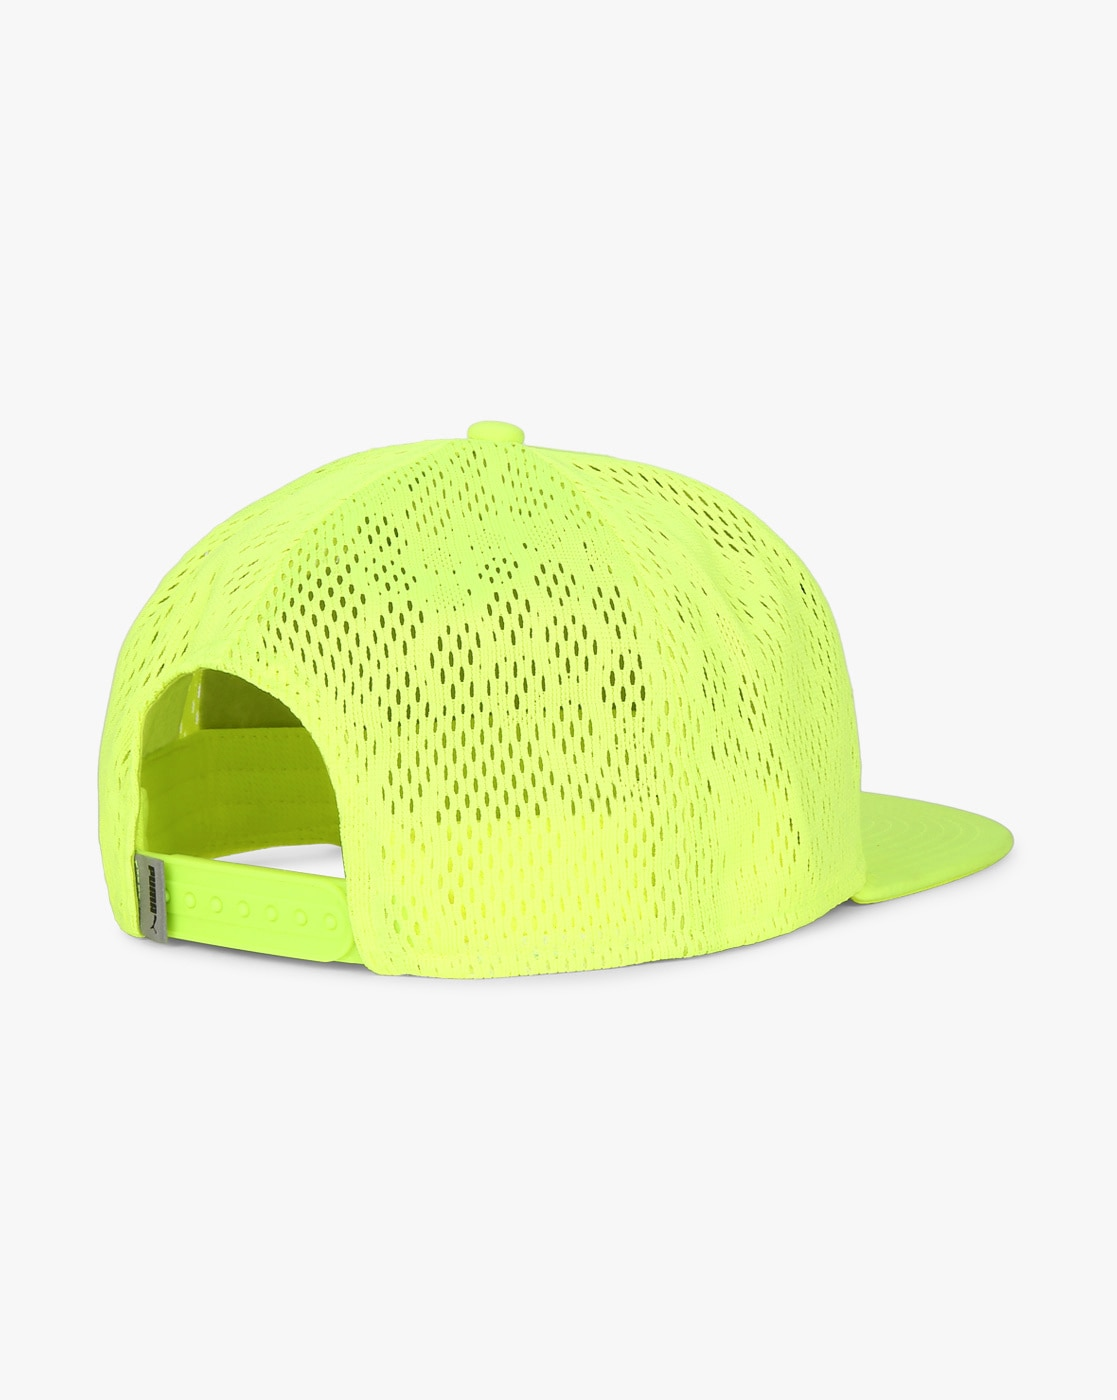 12d545a84ac Buy YELLOW Caps   Hats for Men by Puma Online